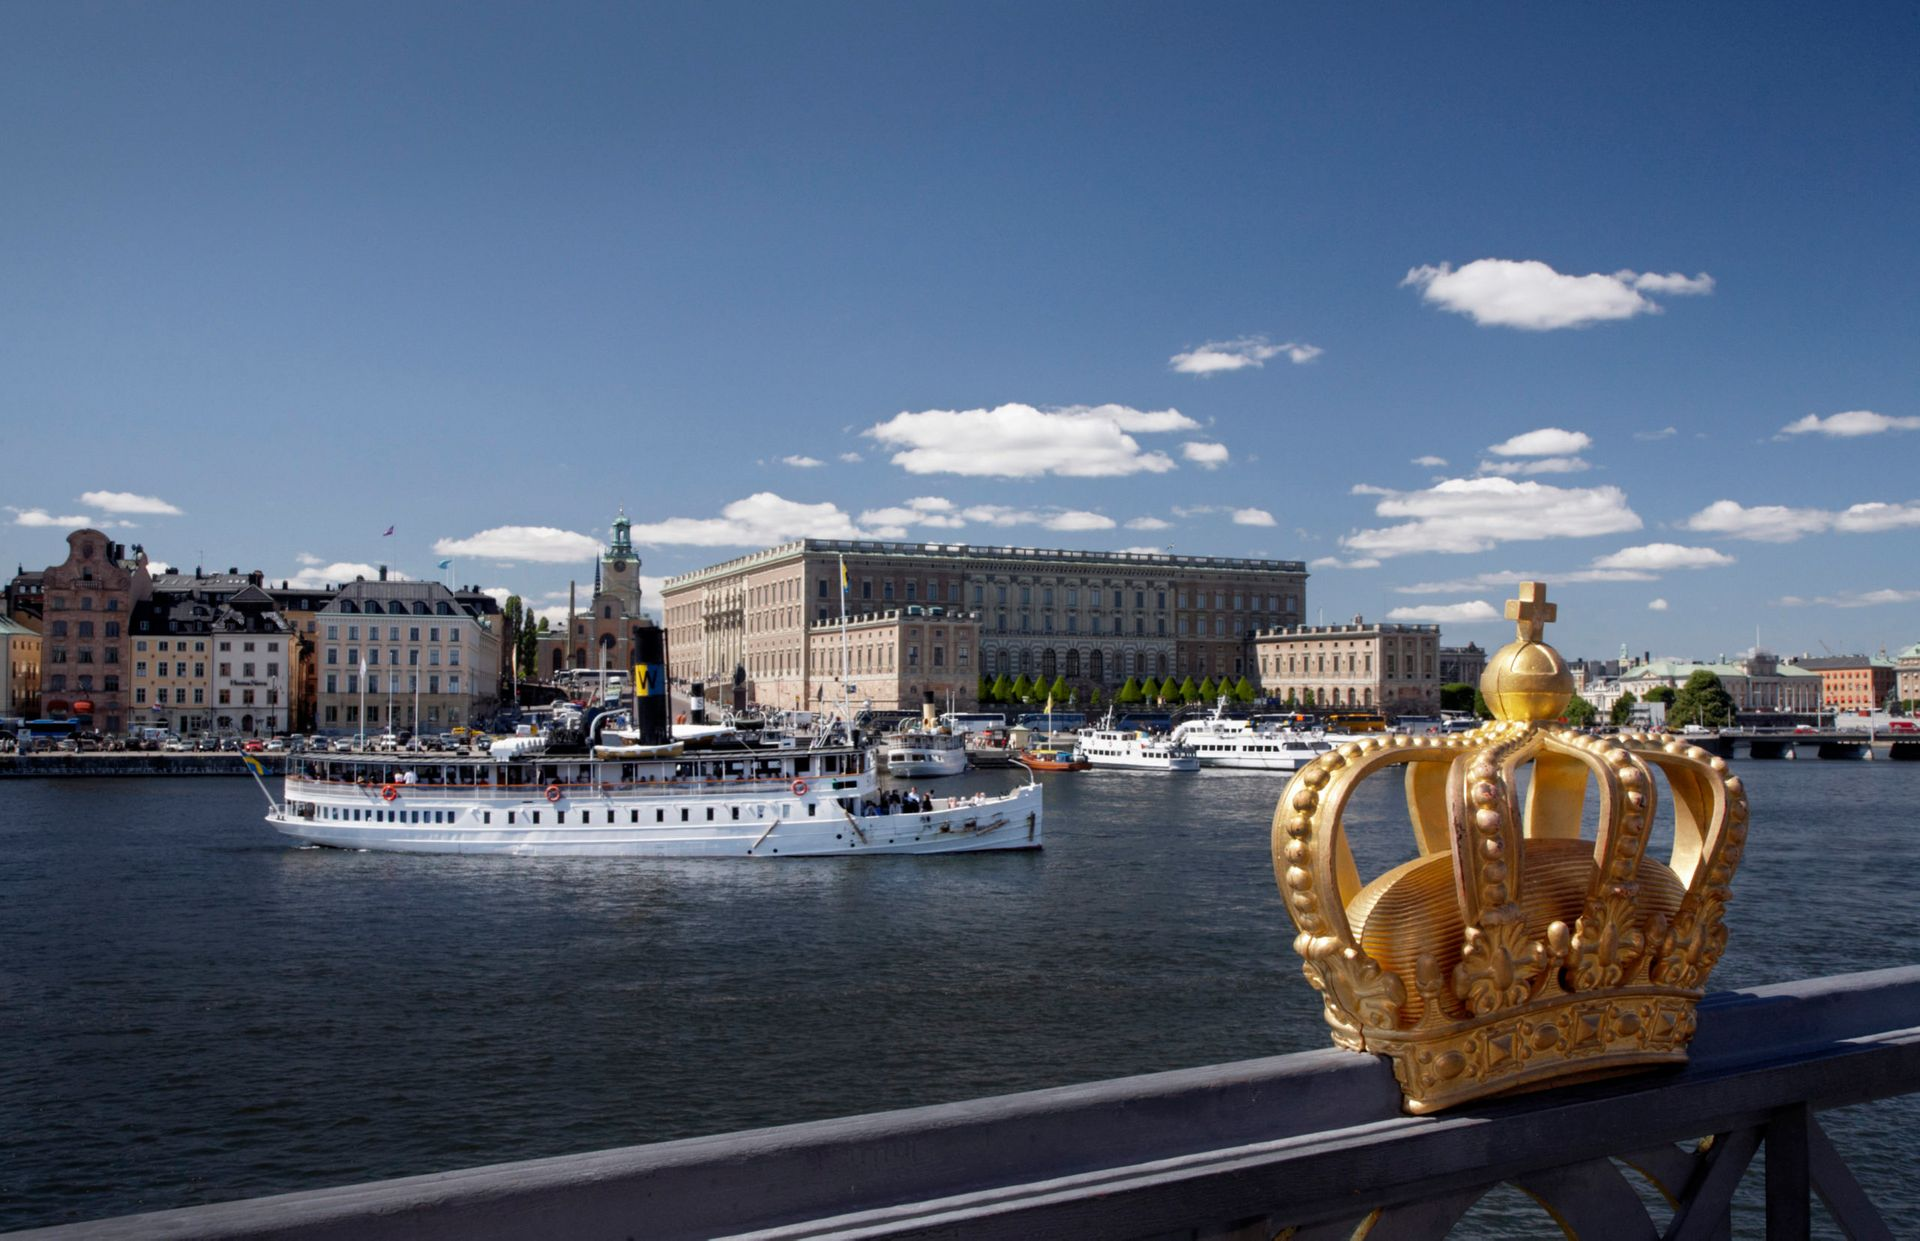 A boat in front of the Royal Palace in Stockholm.